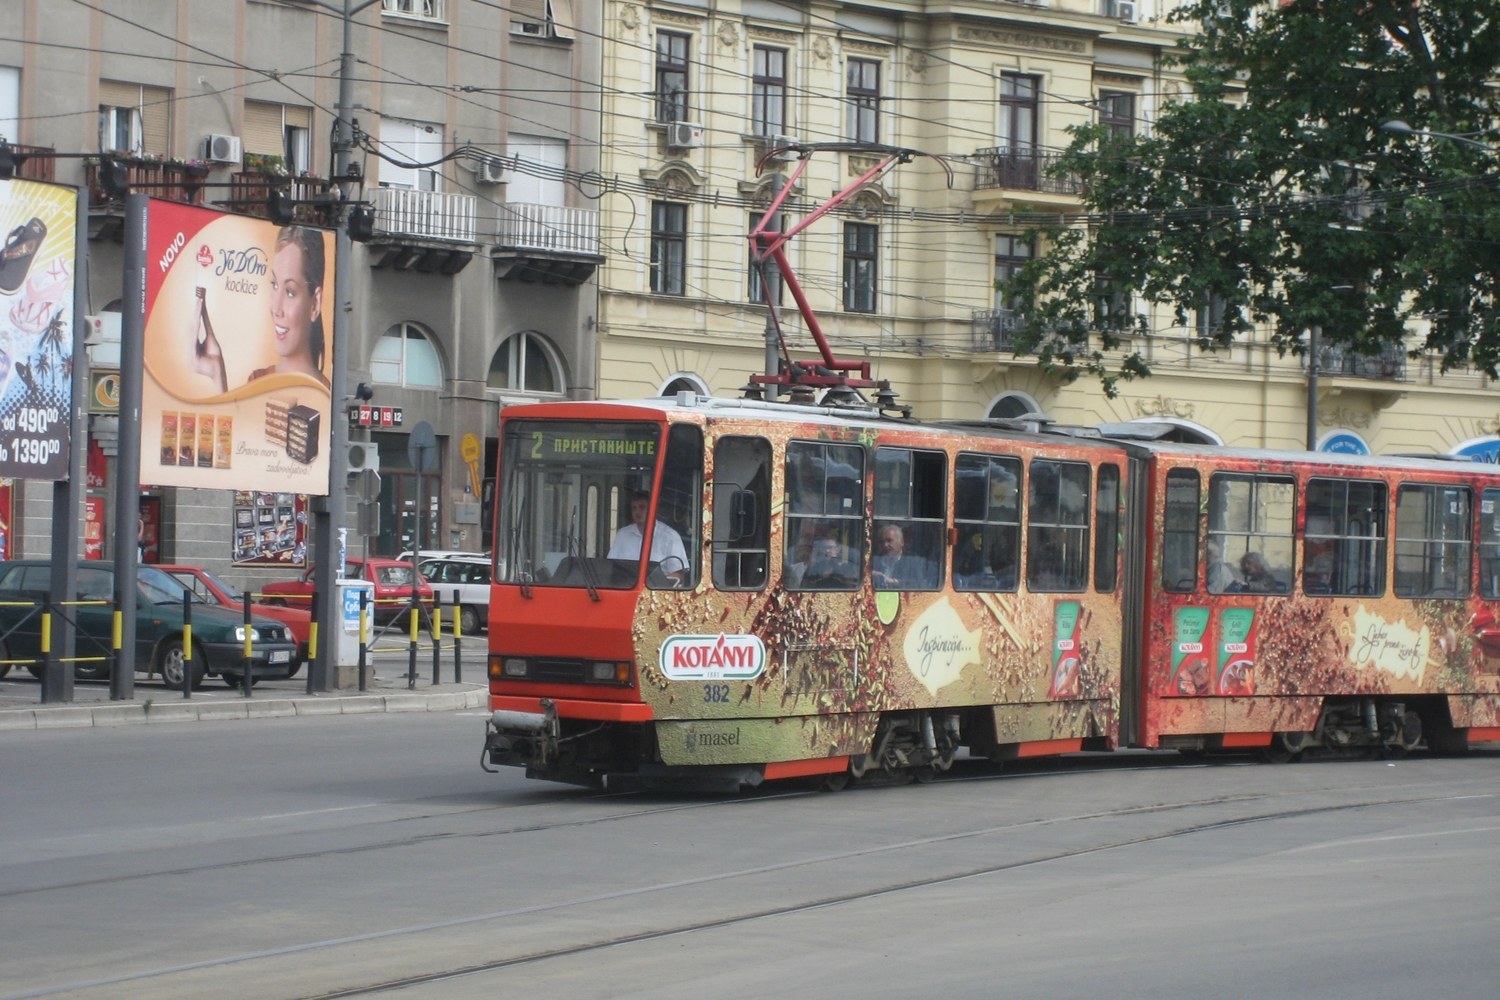 Belgrade articulated tram 382 on tram line 2 on the road Karađorđeva (2008).